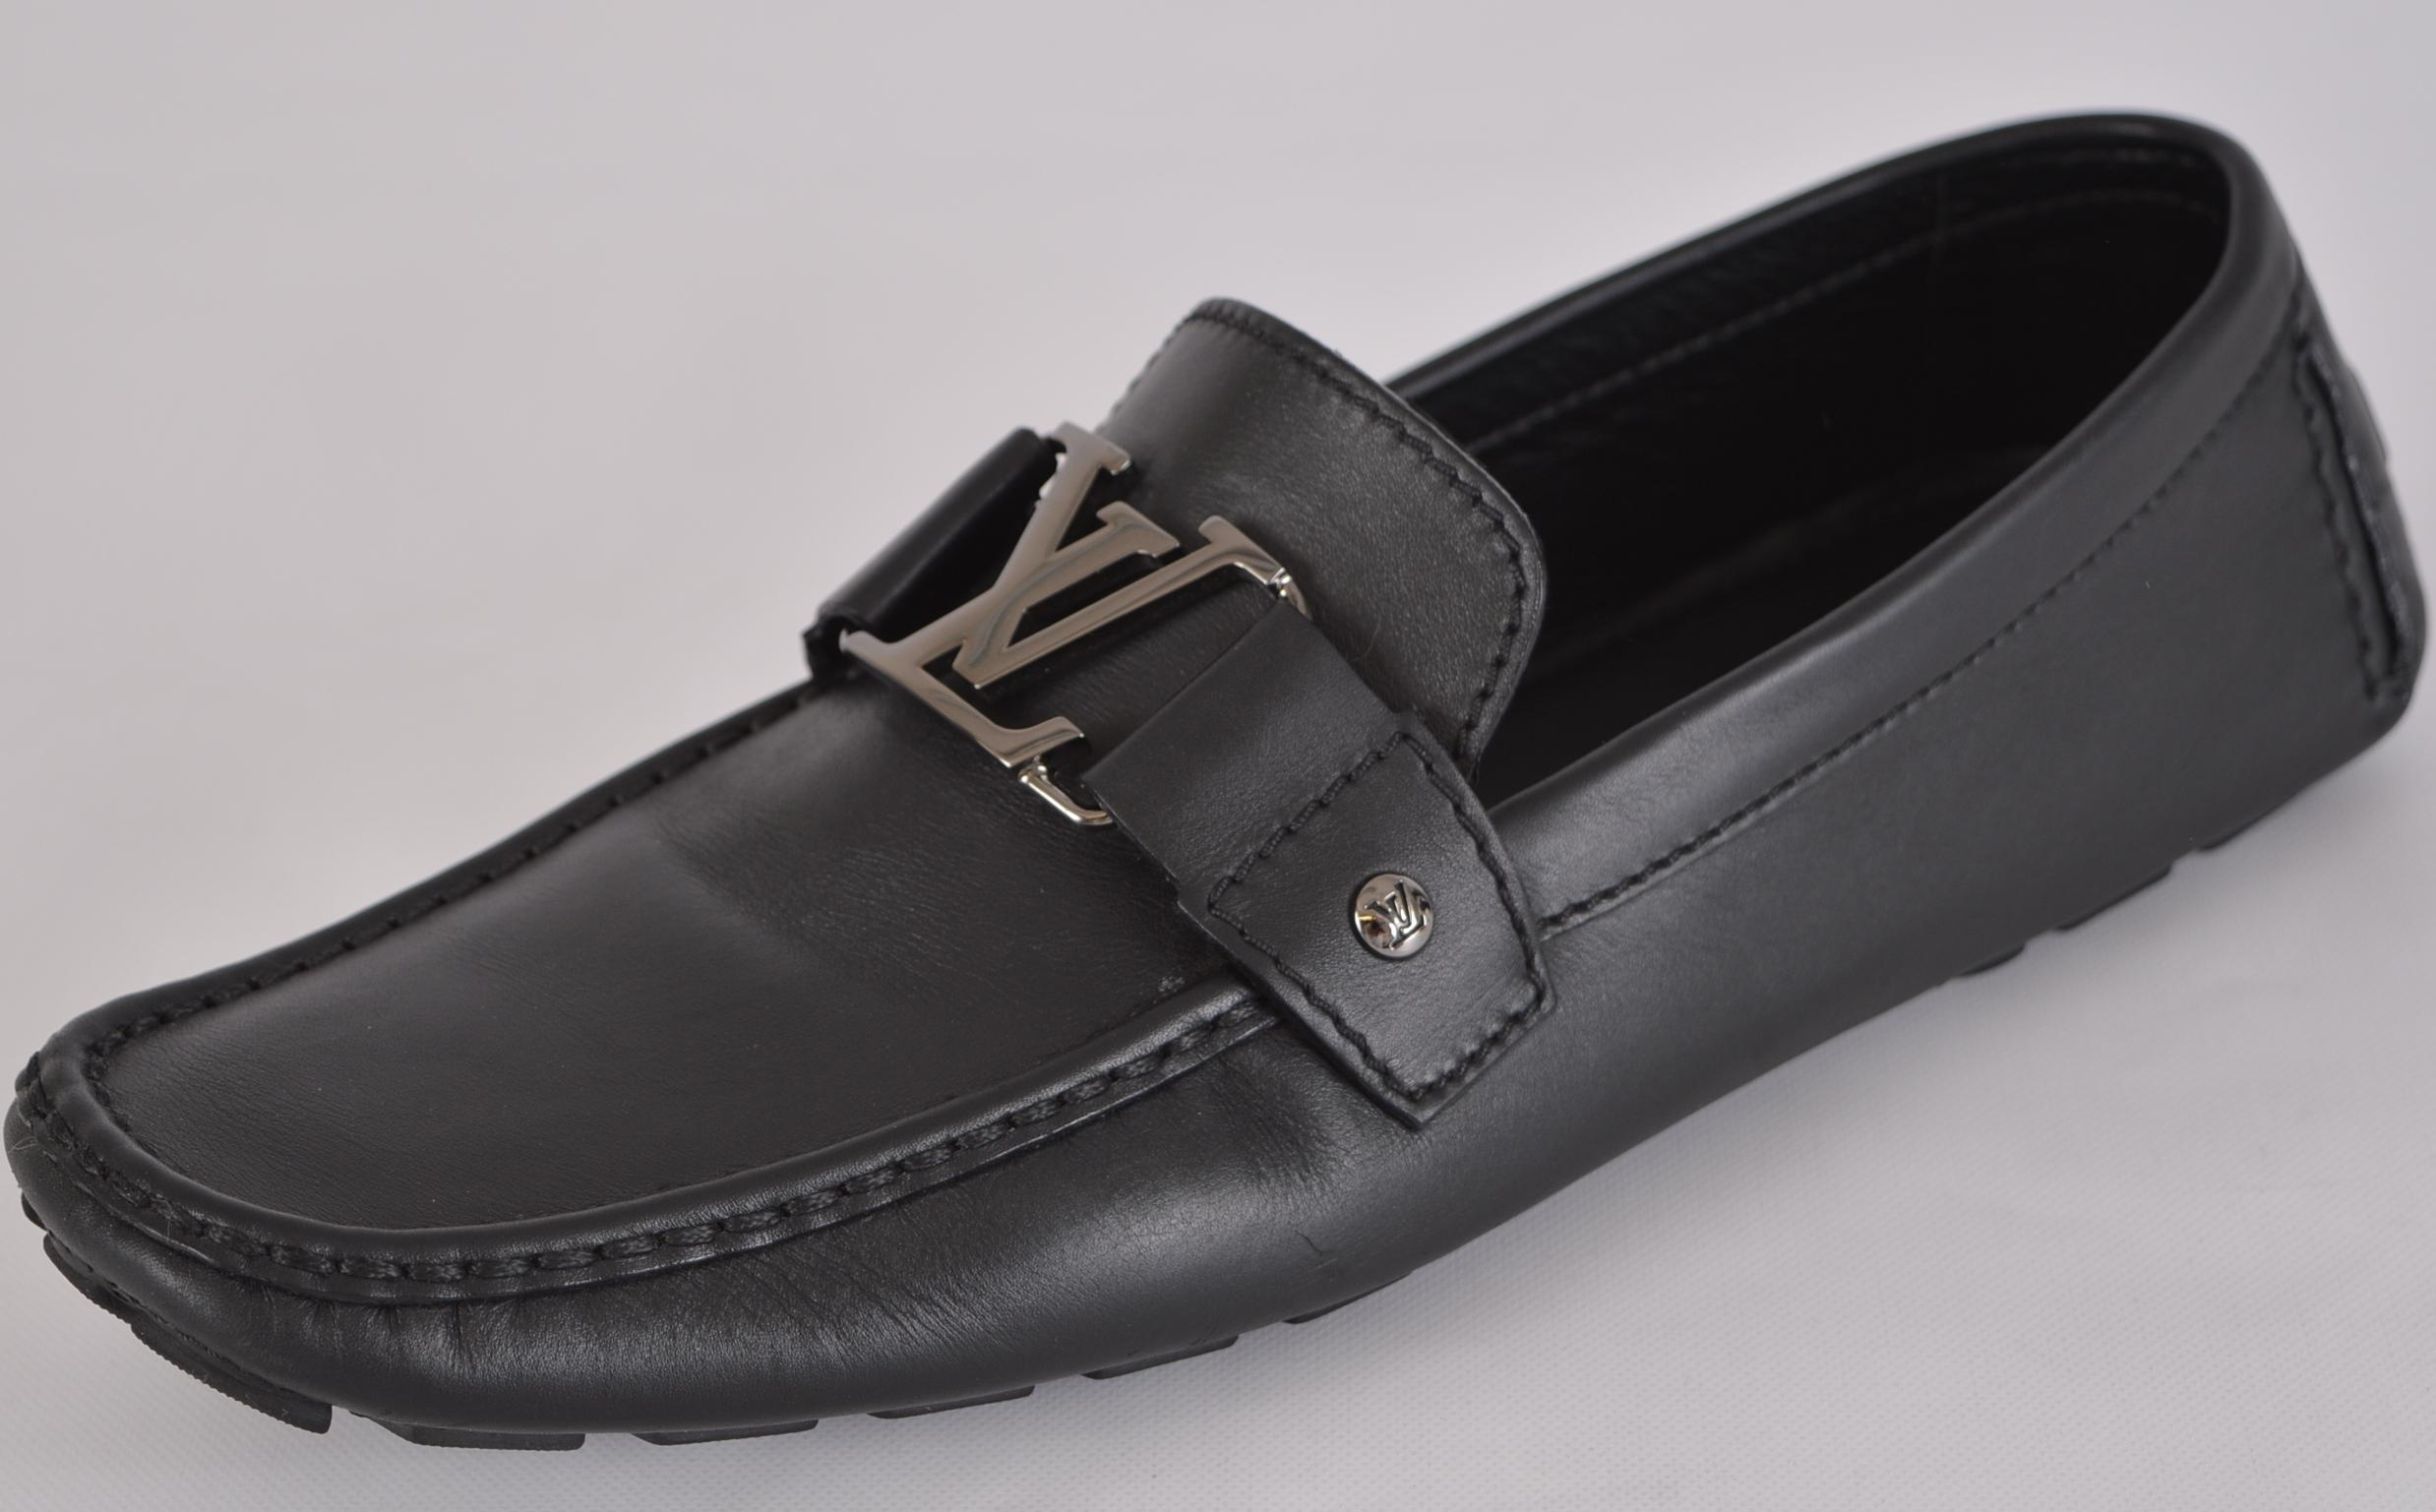 Pre-owned - LEATHER LOAFERS Louis Vuitton UVGg59AT5